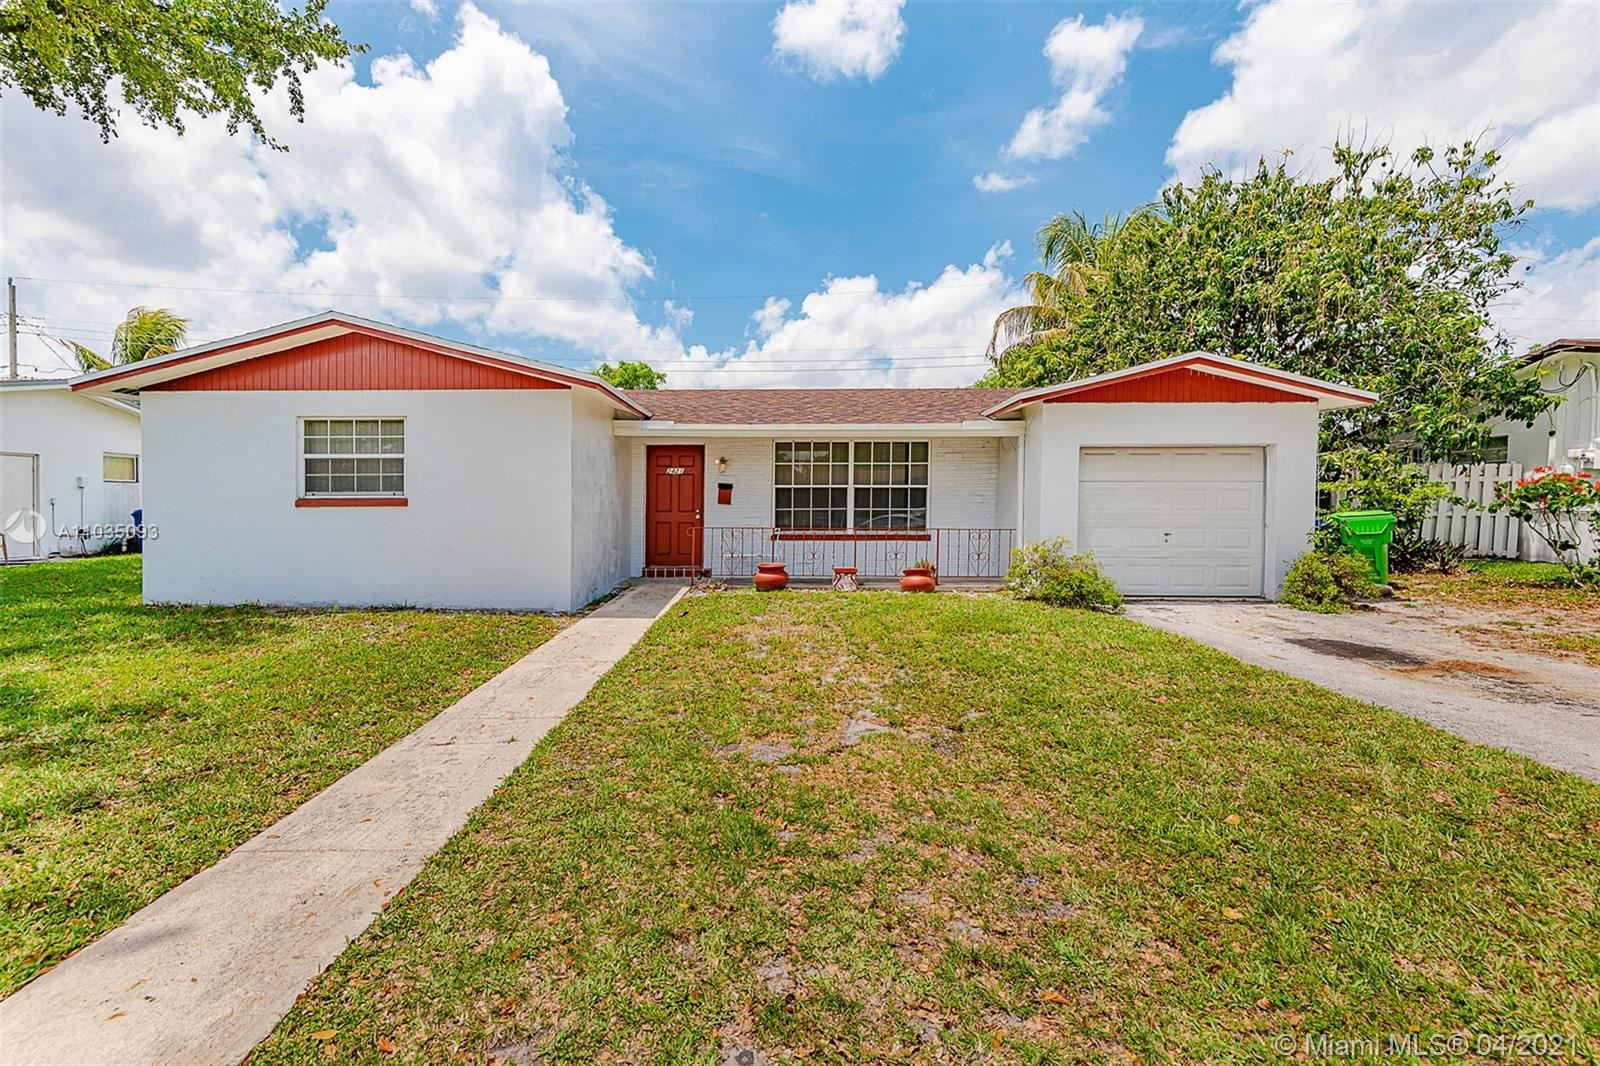 Photo of 2421 NW 63rd Ave, Sunrise, FL 33313 (MLS # A11035093)